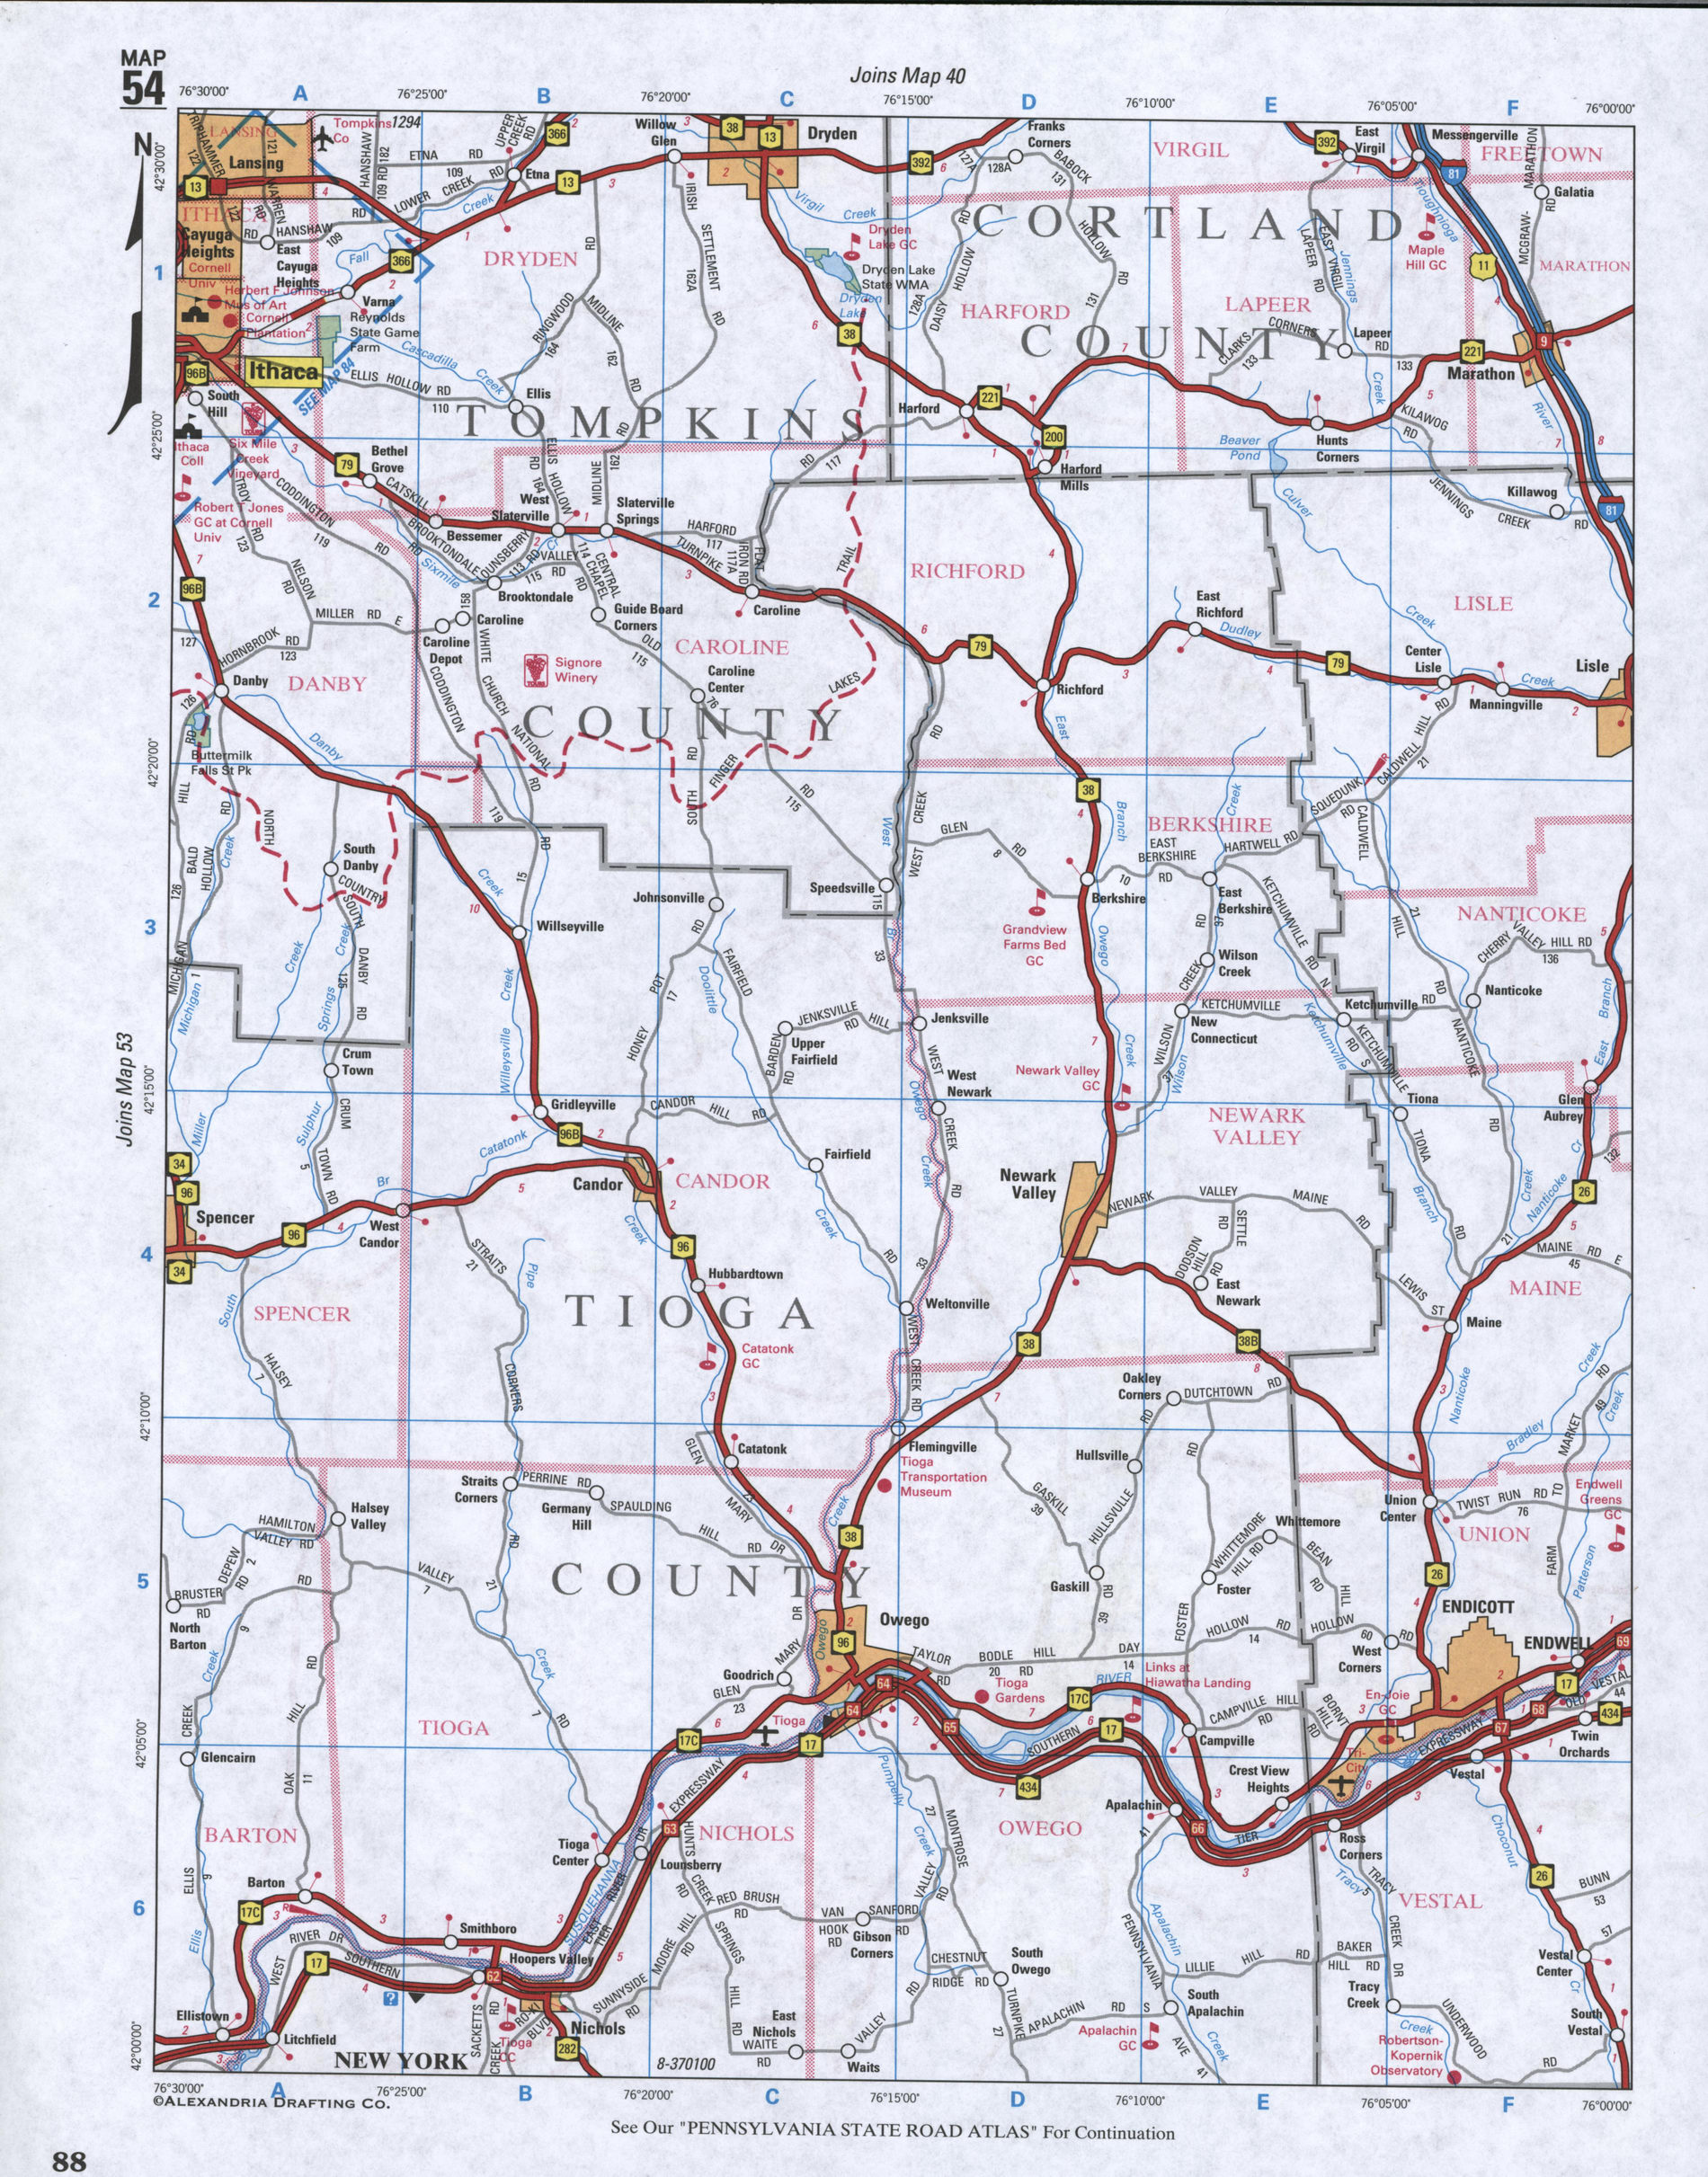 Map of Tioga County, New York state